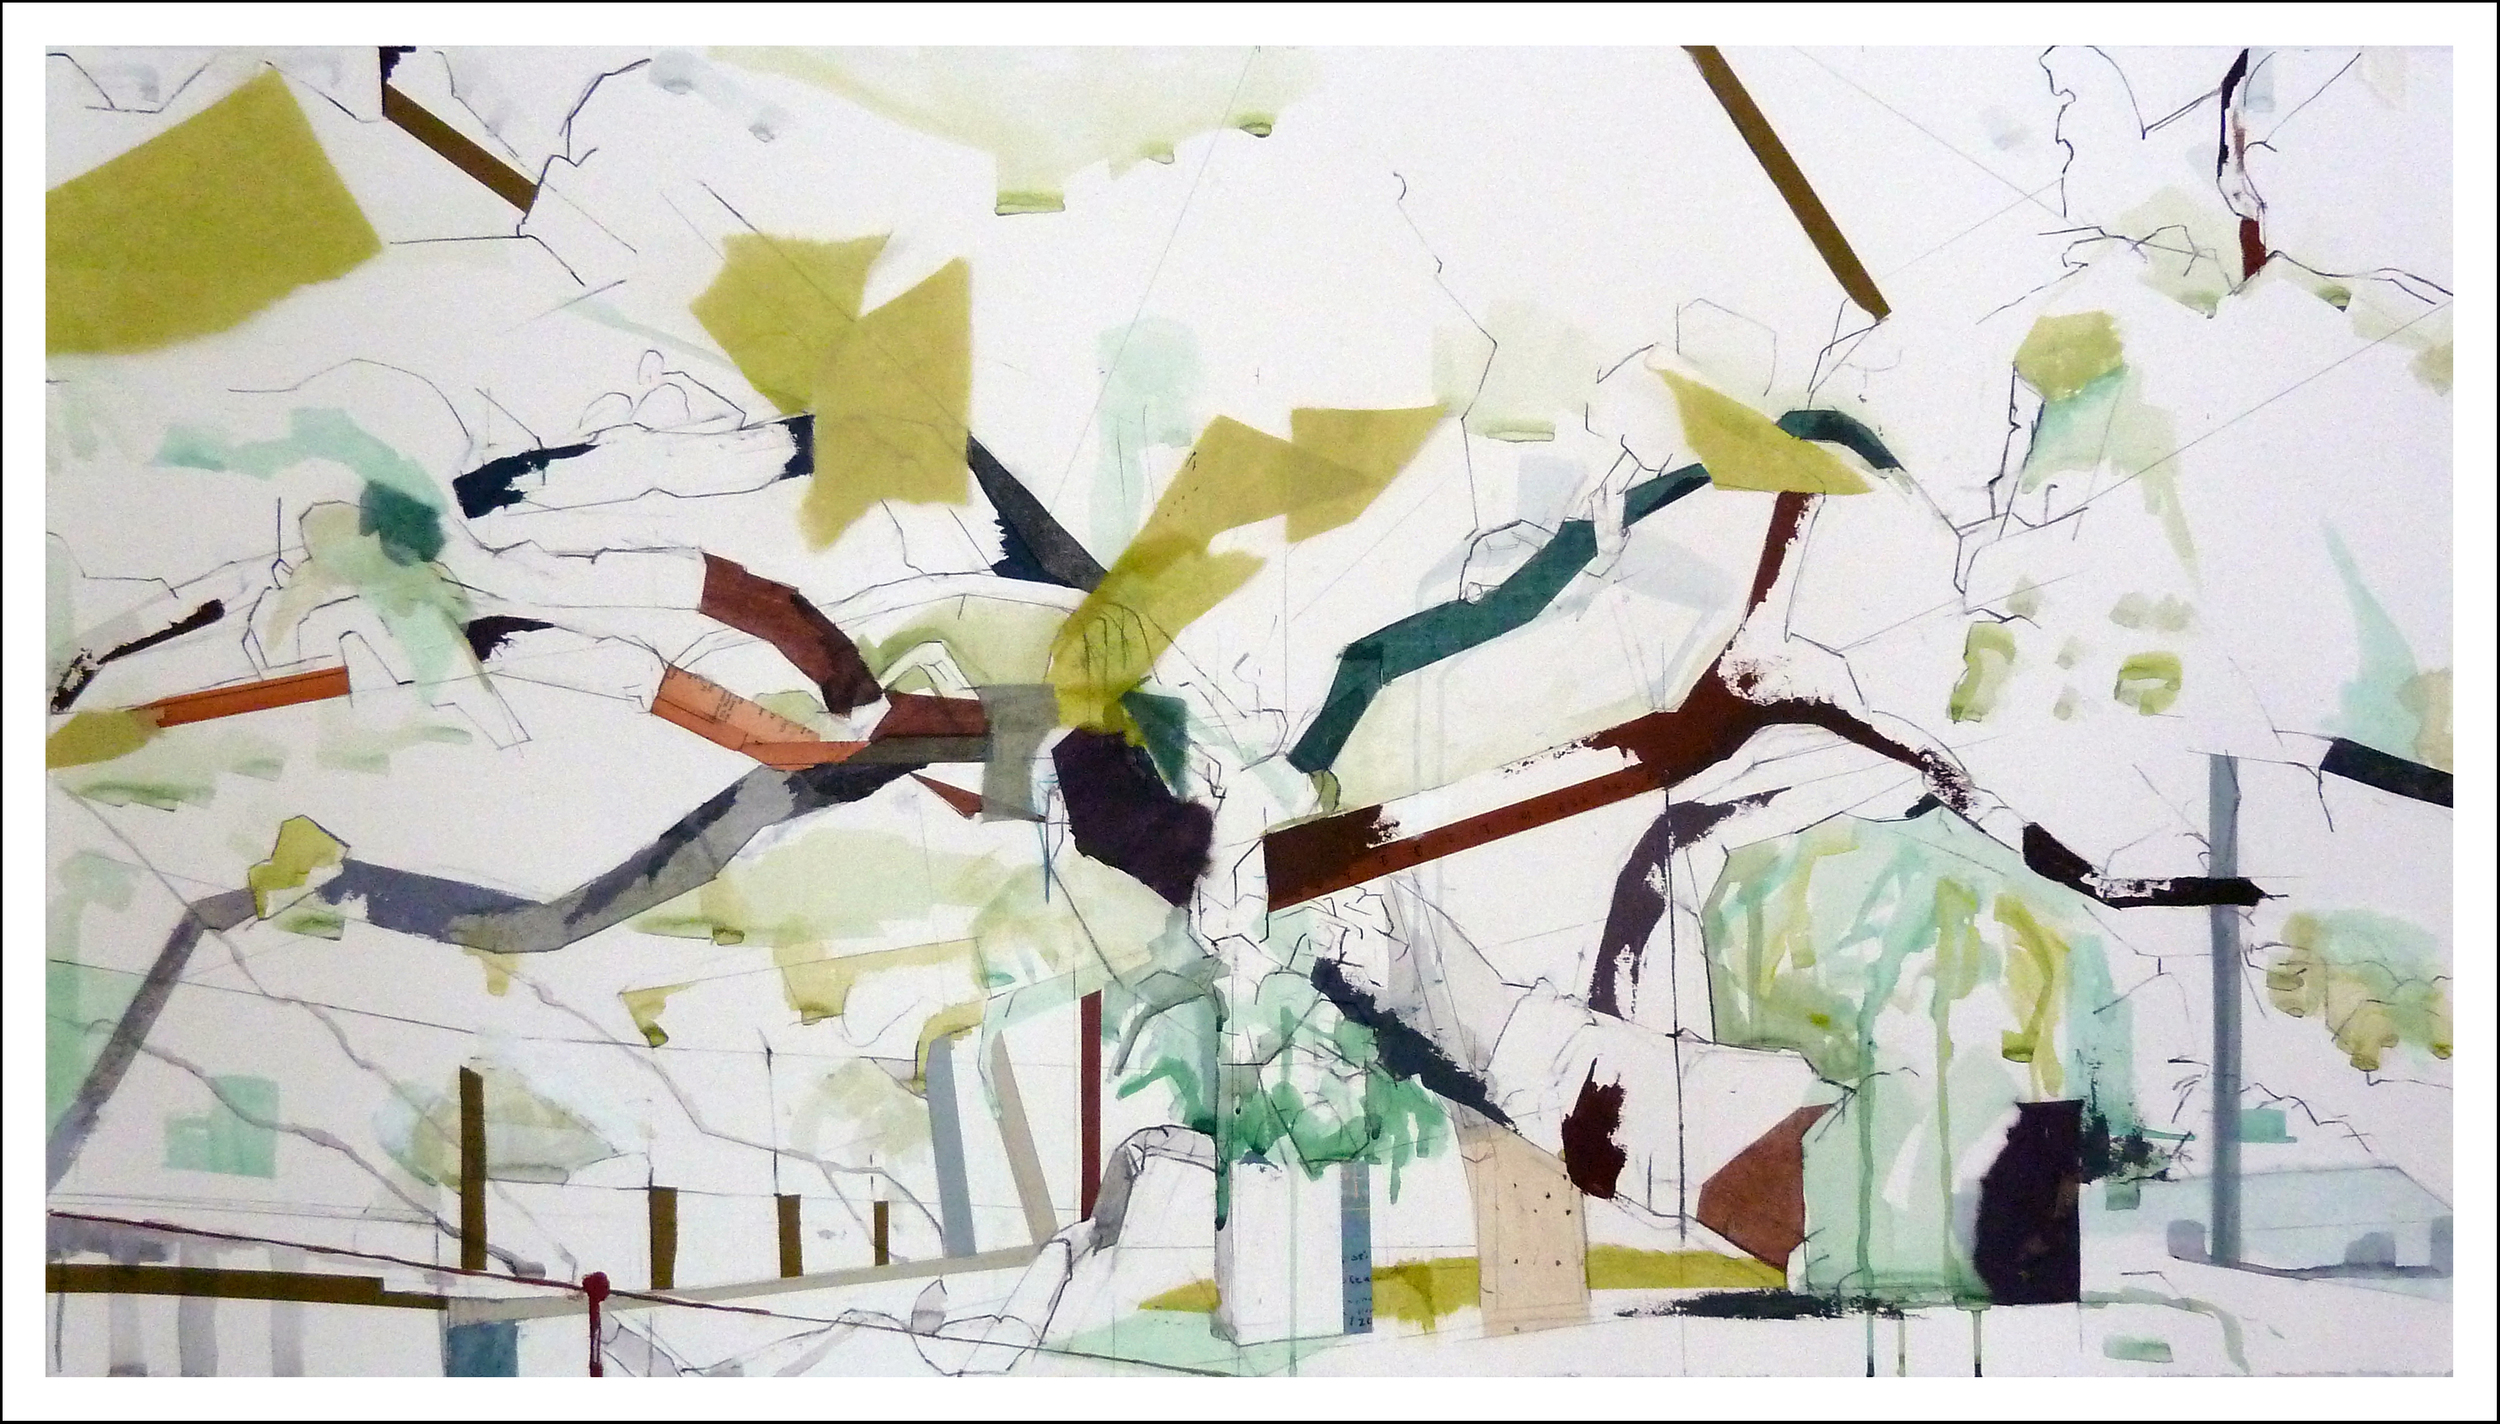 """29°42'41.0""""N 98°08'10.0""""W     Founder's Oak I,   2014    30 inches x 41.25 inches,    Mixed-media on paper"""